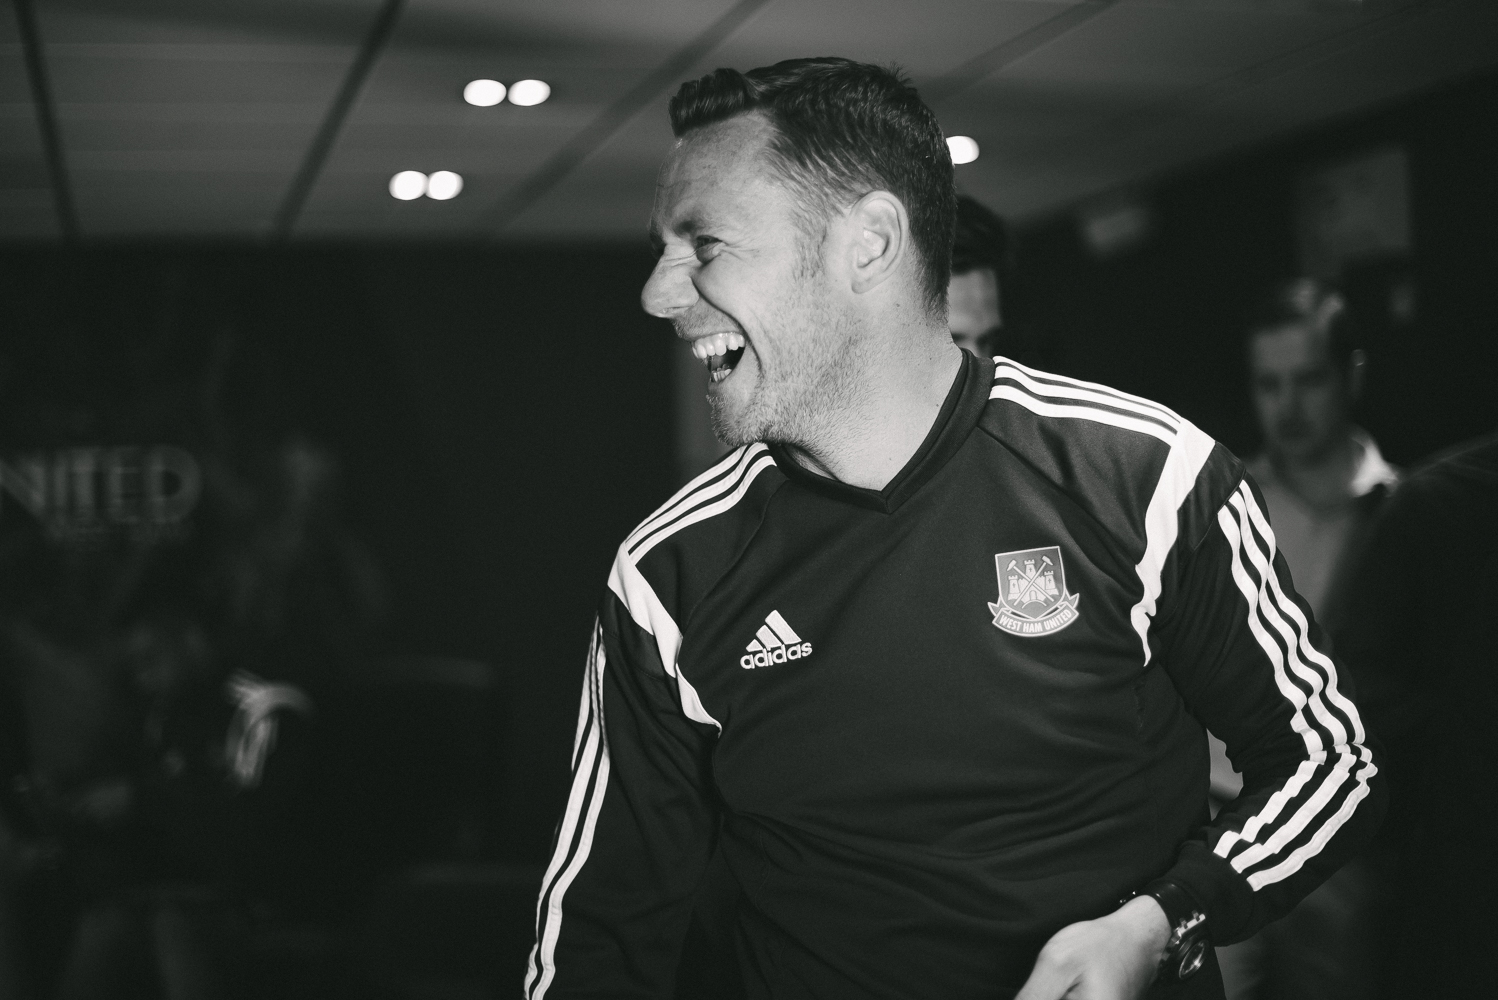 Betway_WestHam_Alex_Wallace_Photography_0131.jpg